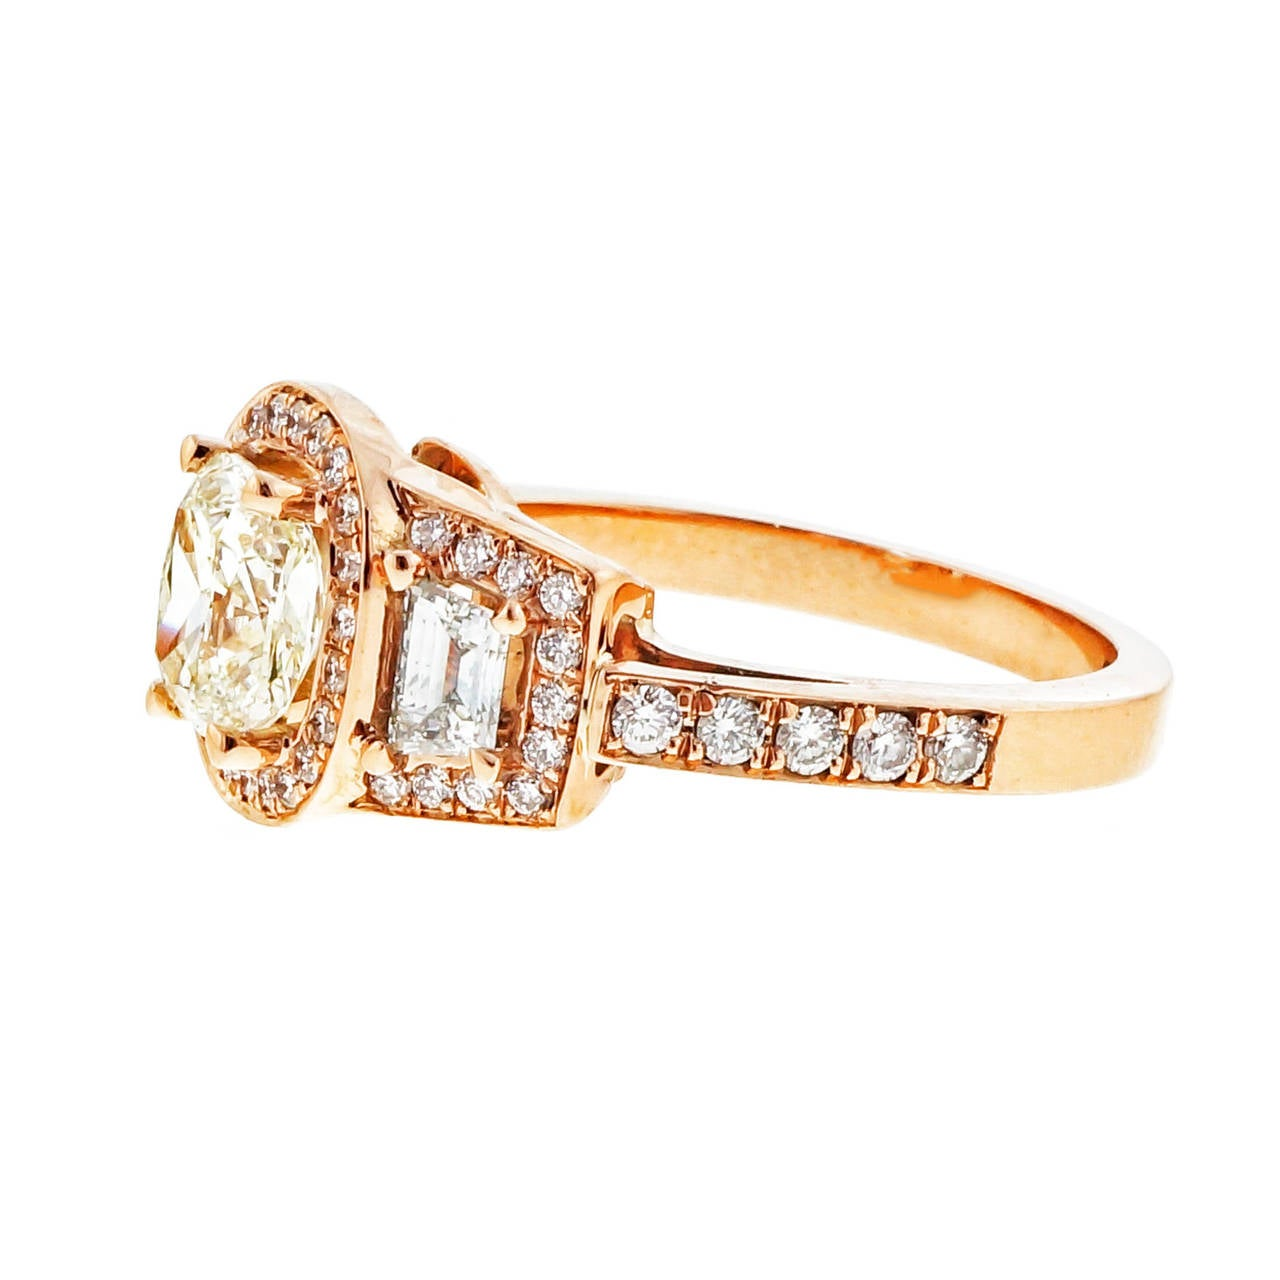 Peter Suchy Diamond Gold Triple Halo Trapezoid Engagement Ring 4